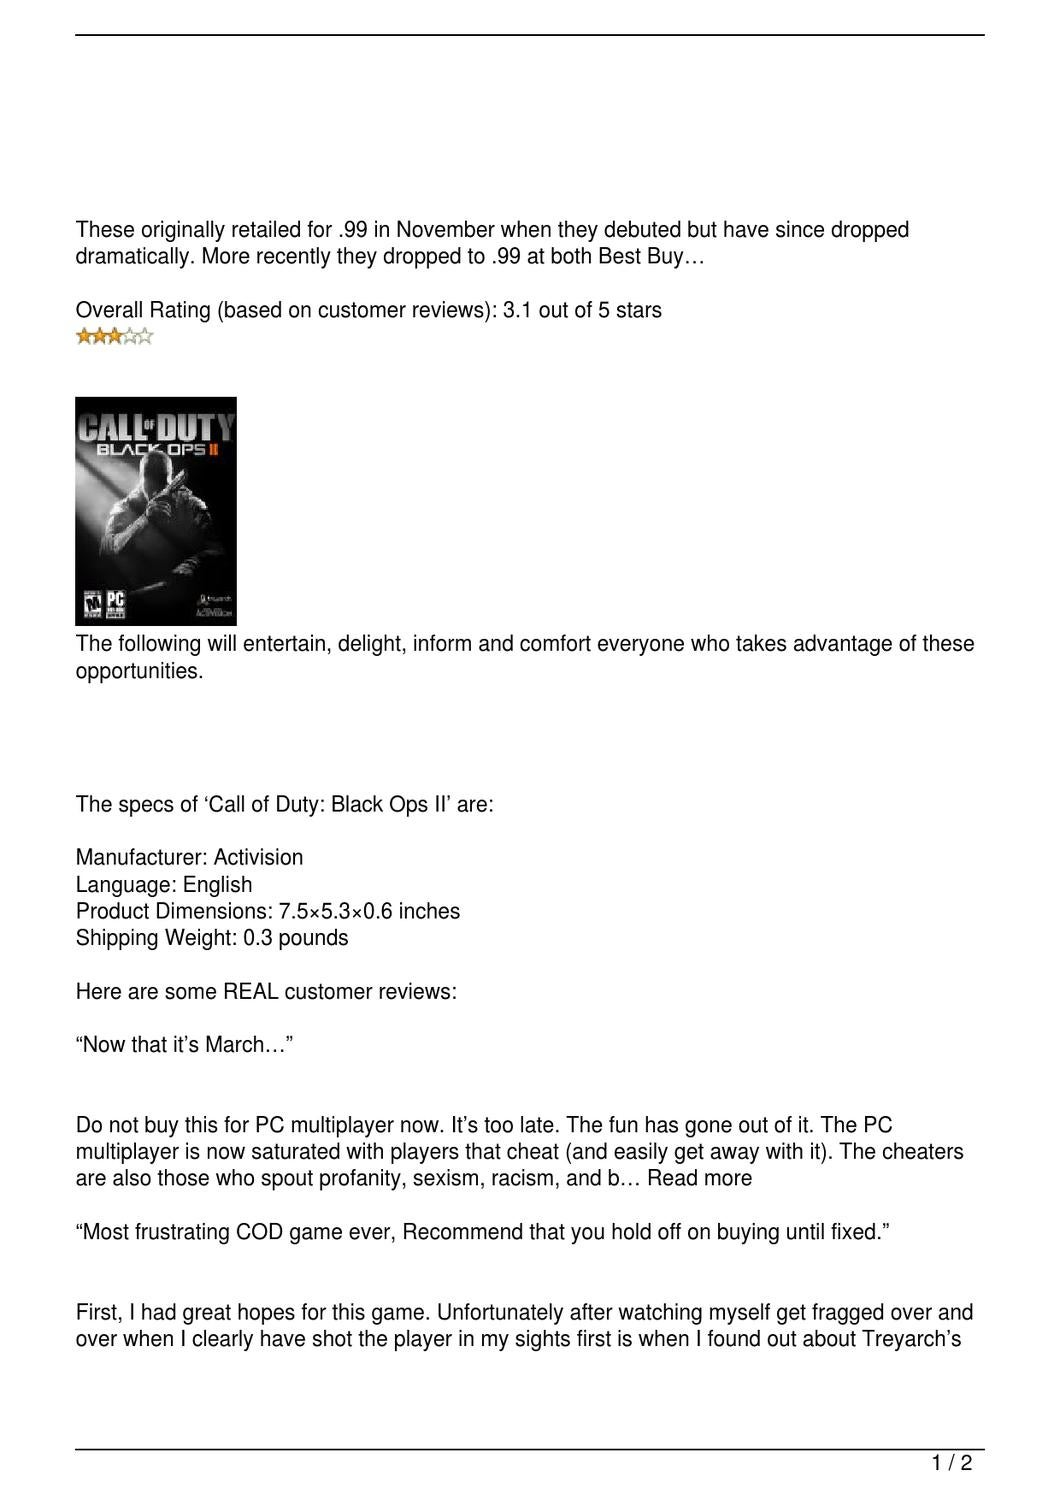 Call of Duty: Black Ops II Review by David - issuu